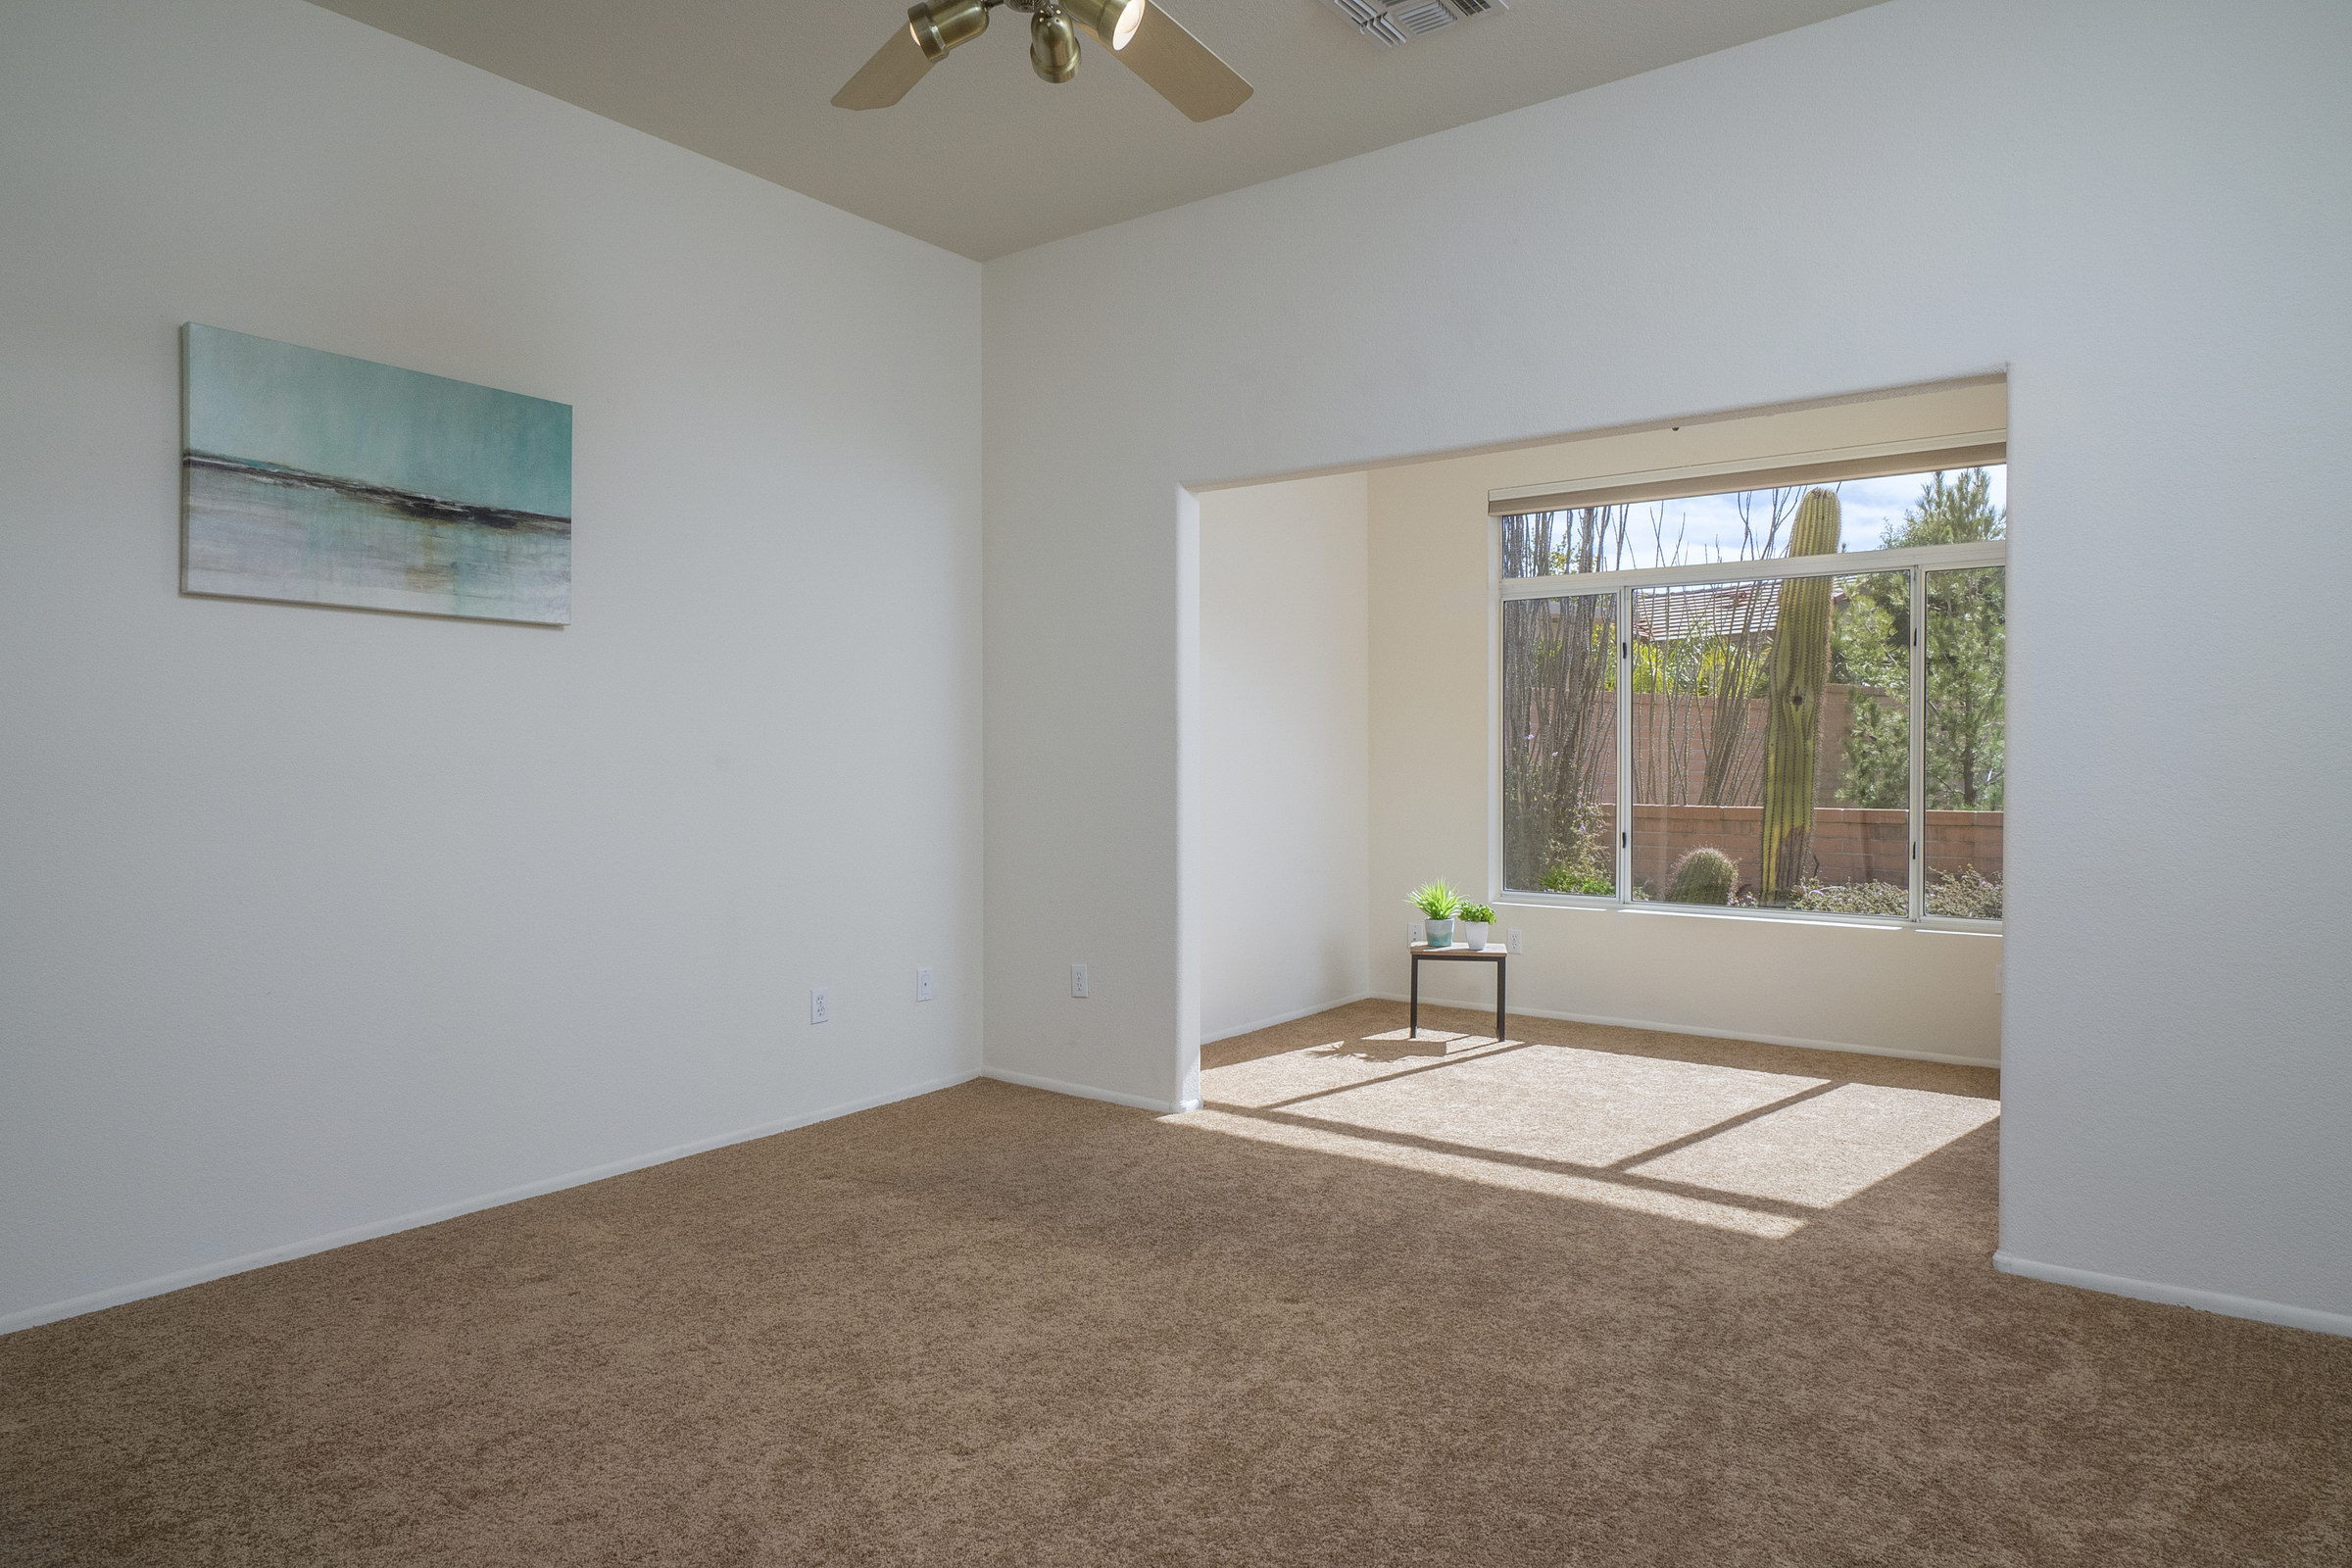 Huge Master Bedroom With Sunlit Sitting Space Thepropertyaces Com